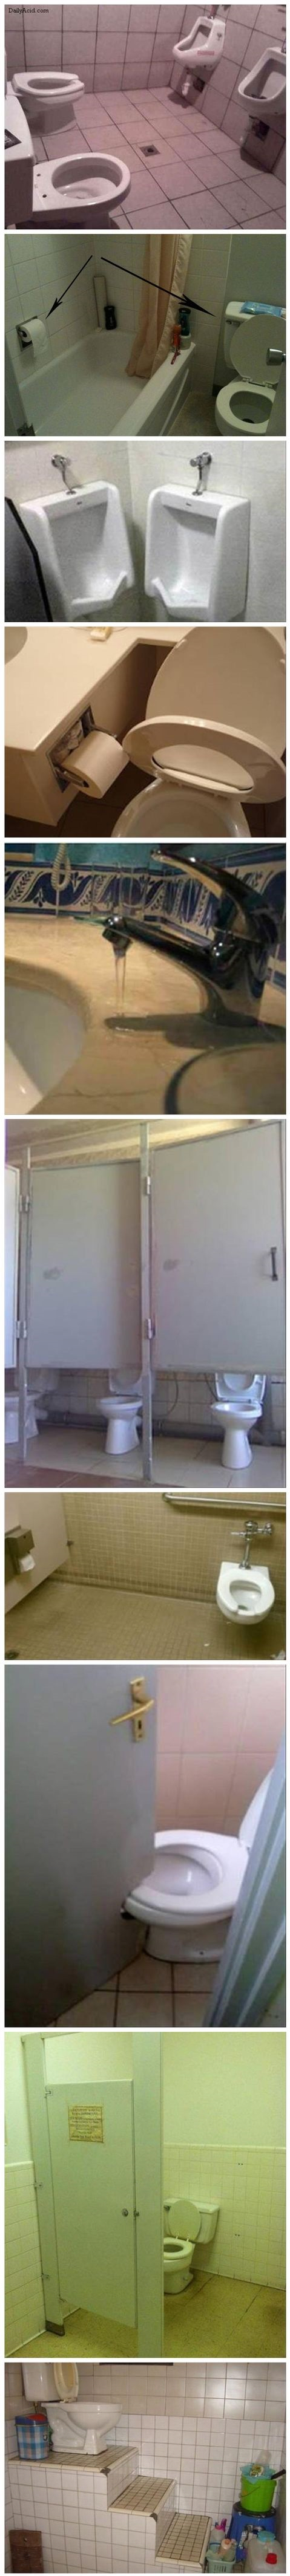 funny-picture-bathroom-fail